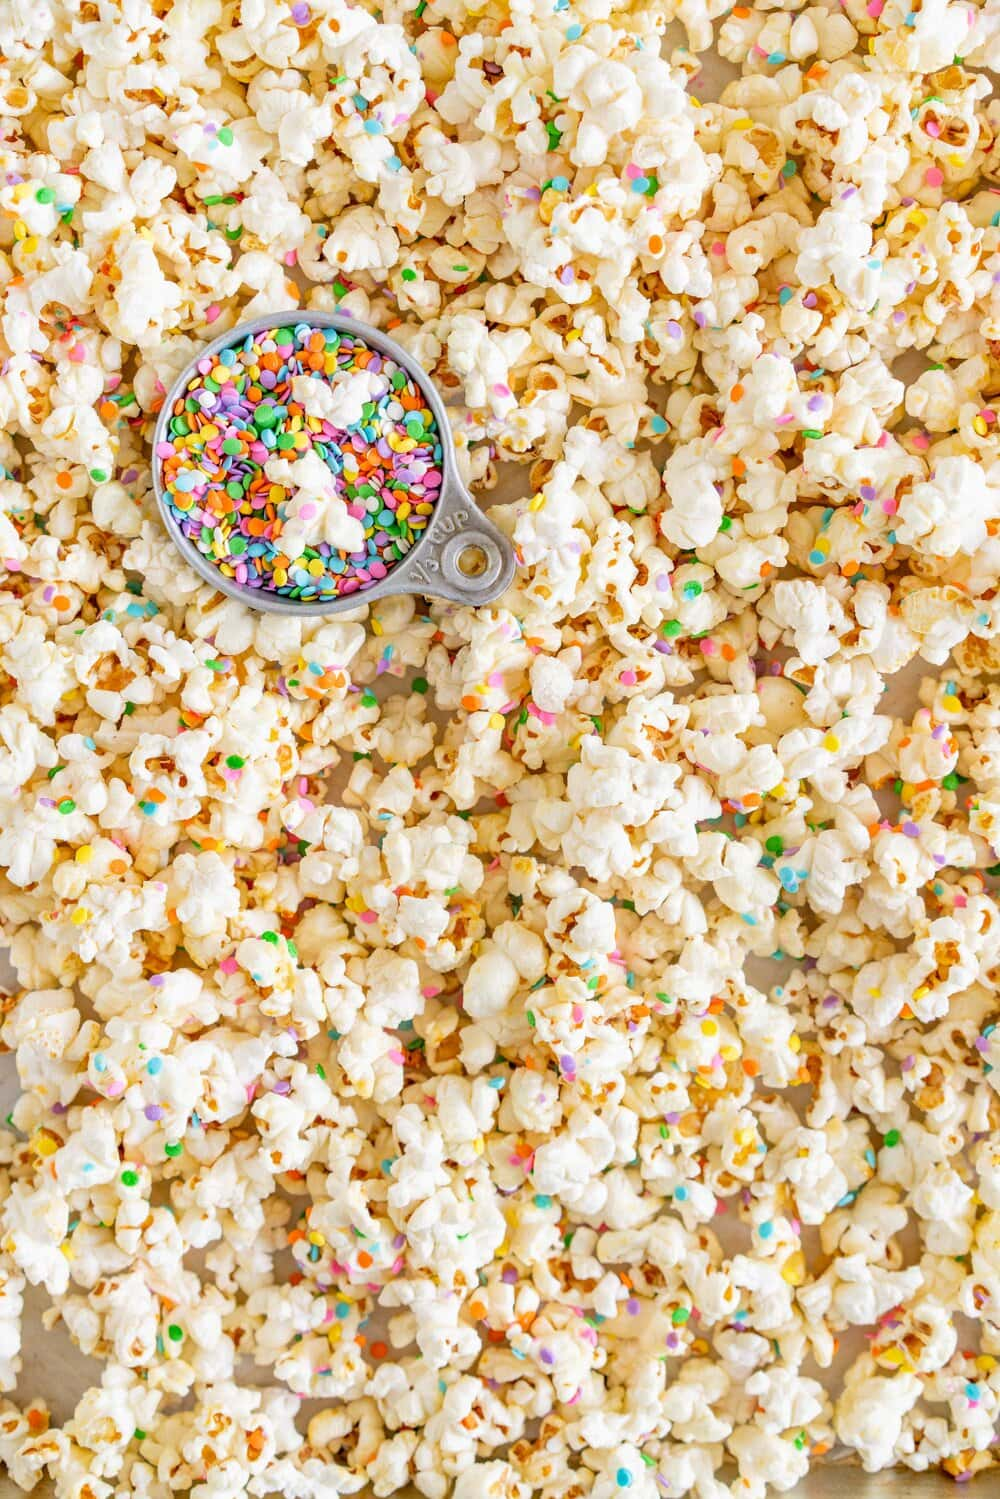 Funfetti Kettle Corn (Sprinkle Kettle Corn) - this sweet, salty snack is the perfect fun treat. Kettle corn is made on the stovetop, and crunchy confetti sprinkles are added for a funfetti twist. This Kettle corn recipe is easy, and is great for making with kids.